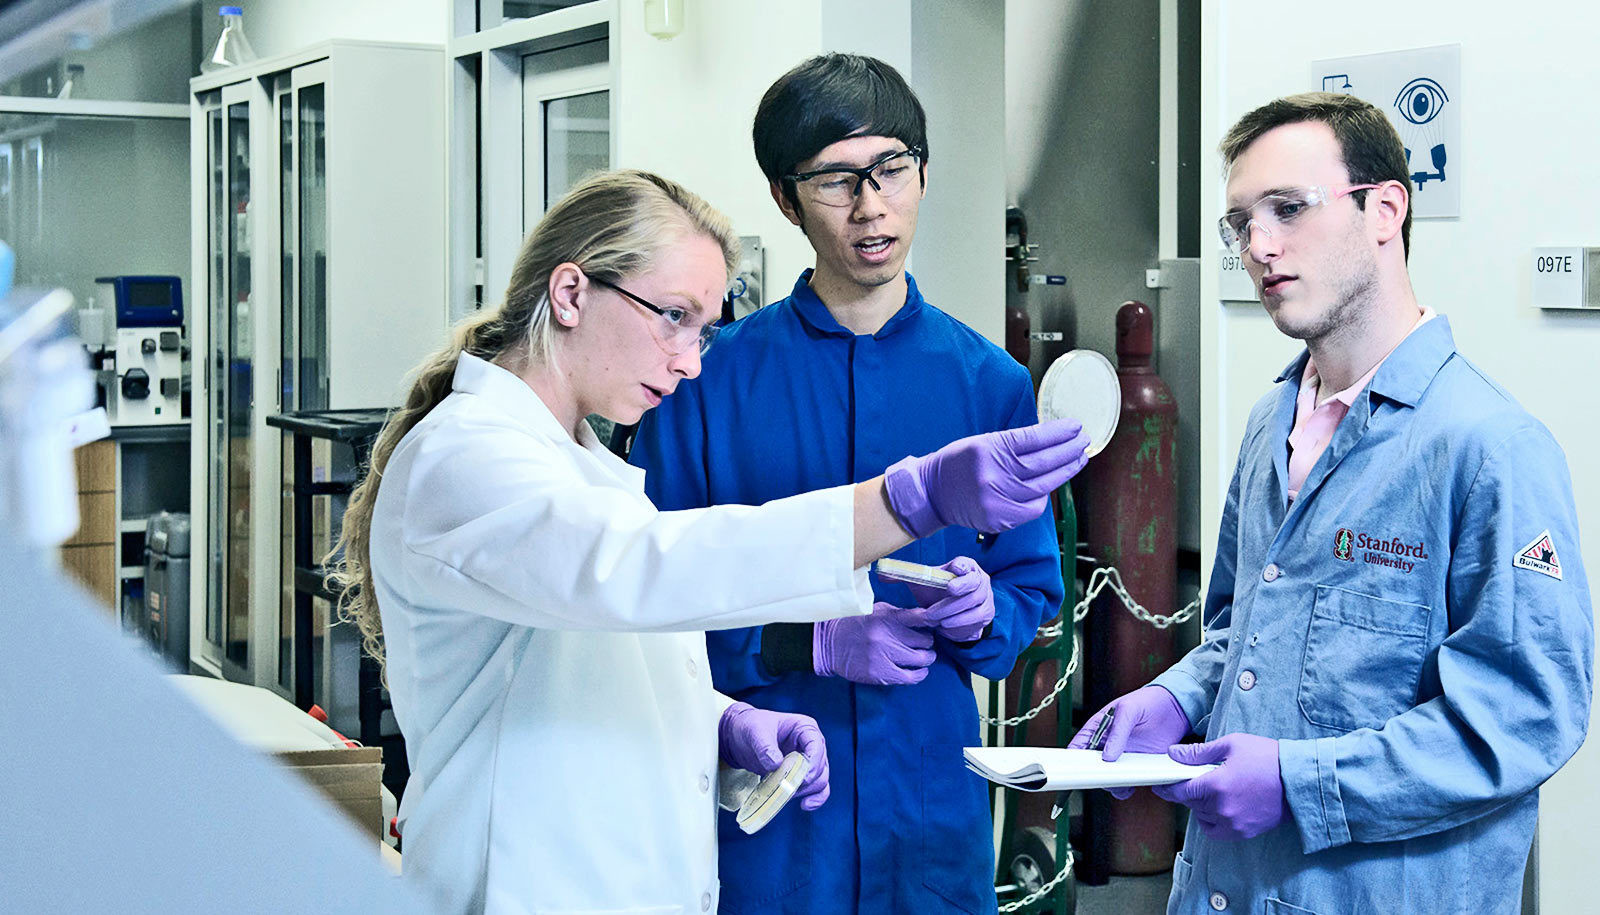 Maria Filsinger Interrante, Christian Choe, and Zach Rosenthal, aka Team Lyseia, strategize about upcoming experiments to test their new antibiotics.